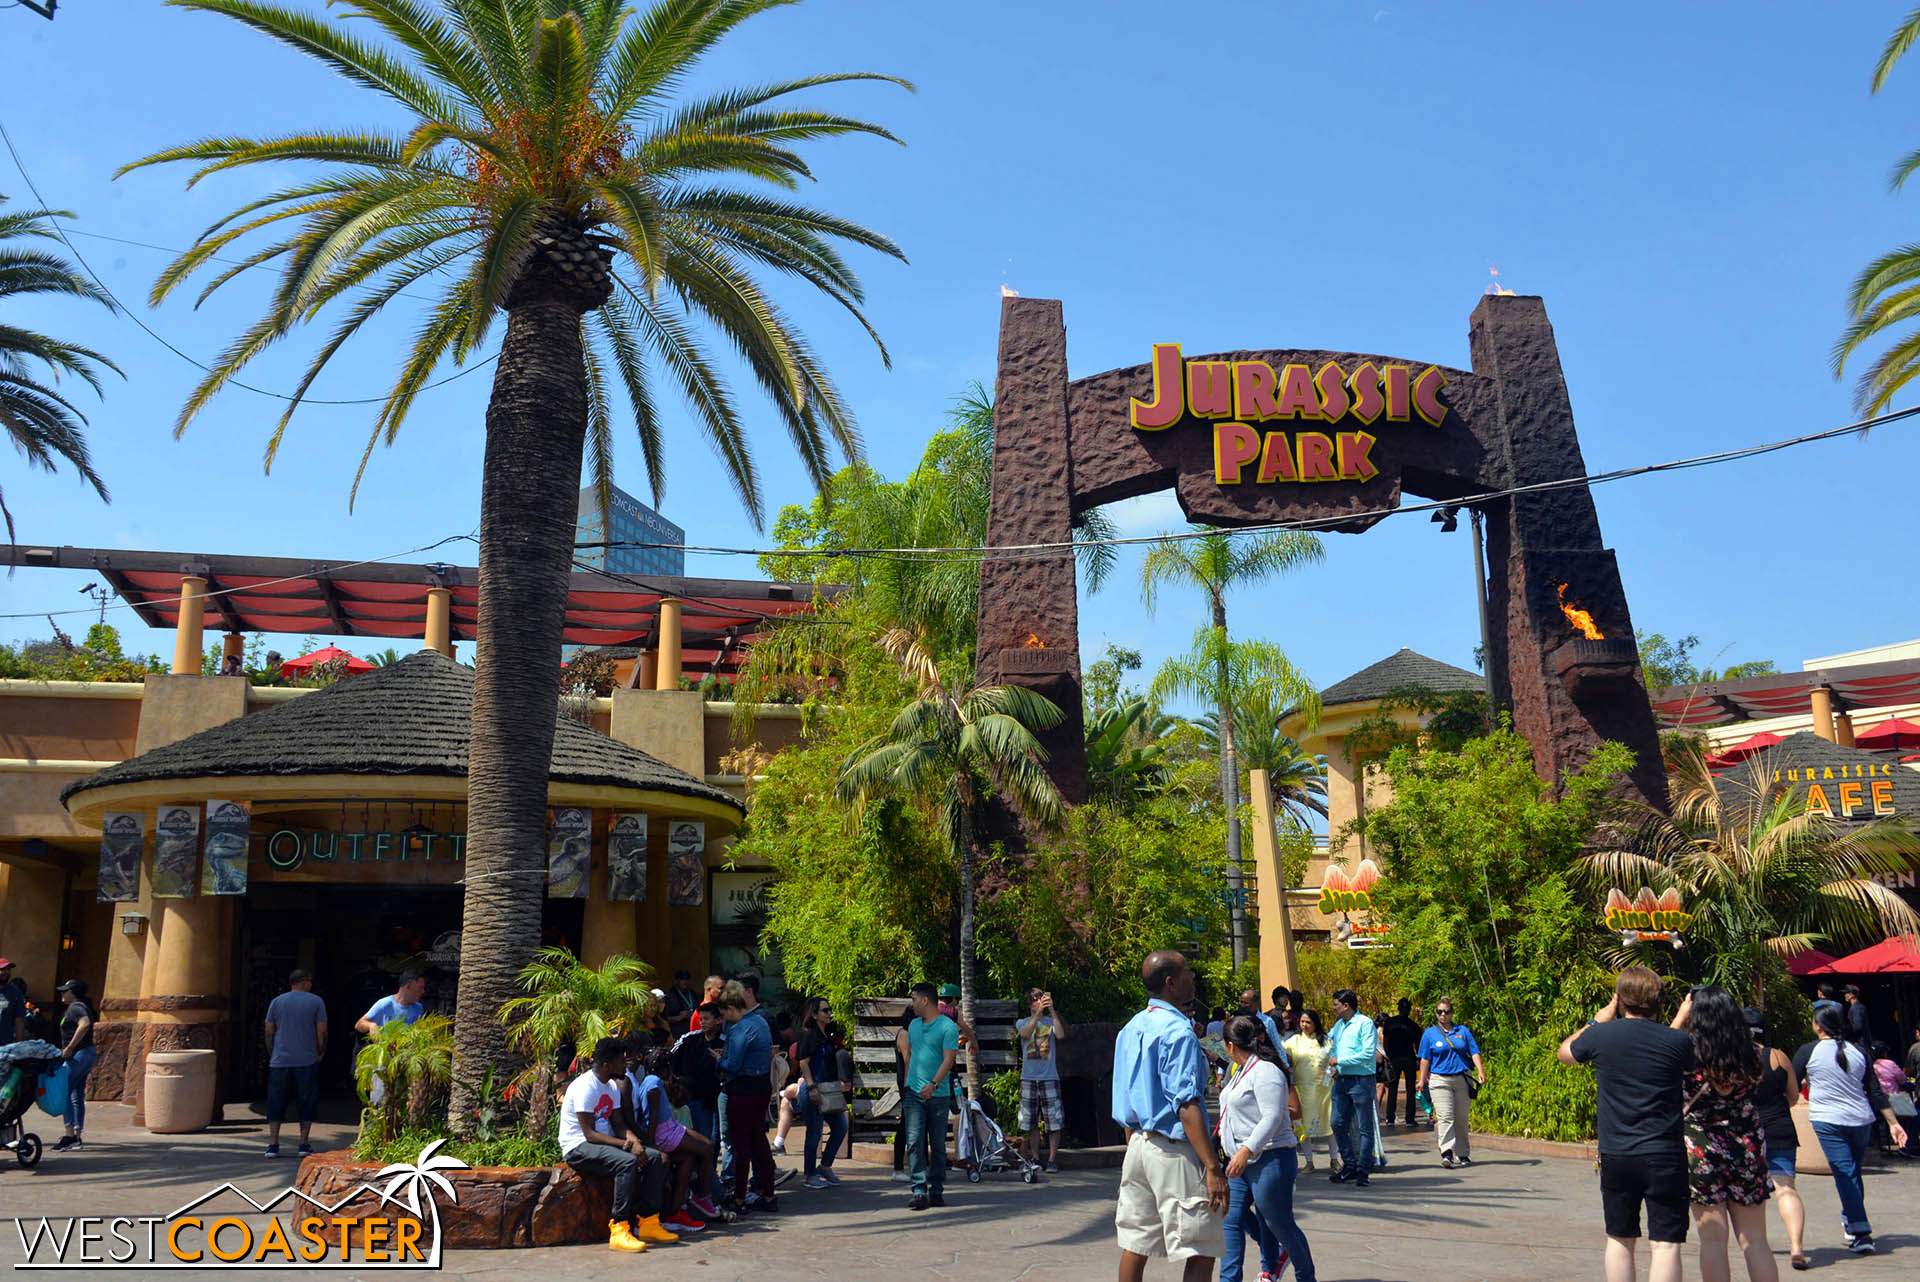 When this ride opened in 1996, it was one of the pinnacles of theming and cinema synergy.